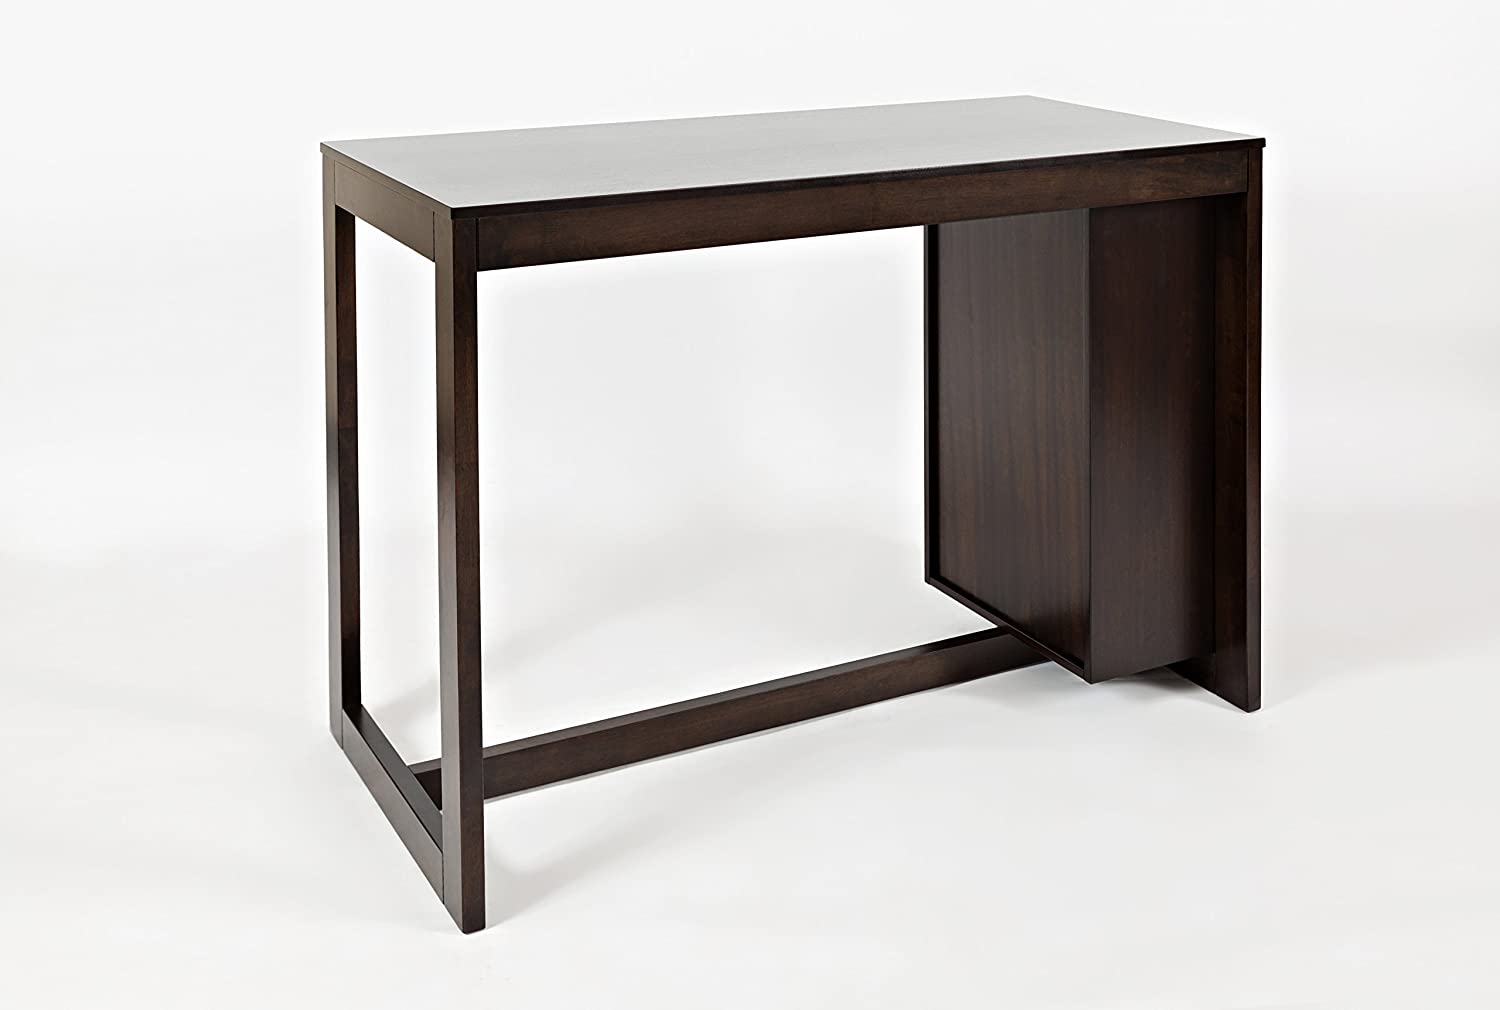 Jofran Tribeca Counter Height Dining Table 22 W X 48 D X 36 H Merlot Finish Set Of 1 Table Chair Se